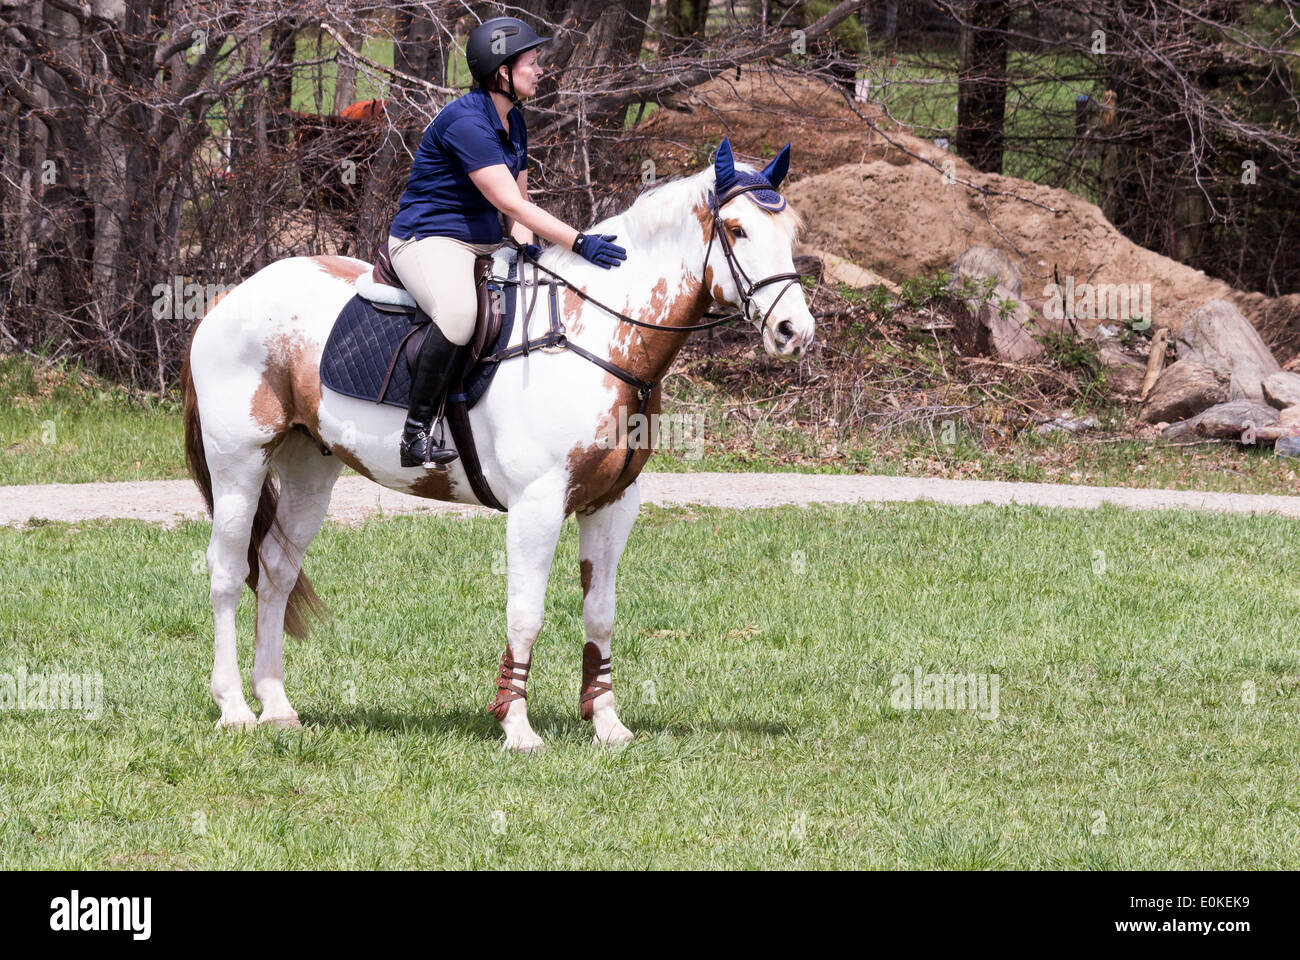 Woman Rider On Paint Horse In English Saddle Petting Her Horse On The Stock Photo Alamy